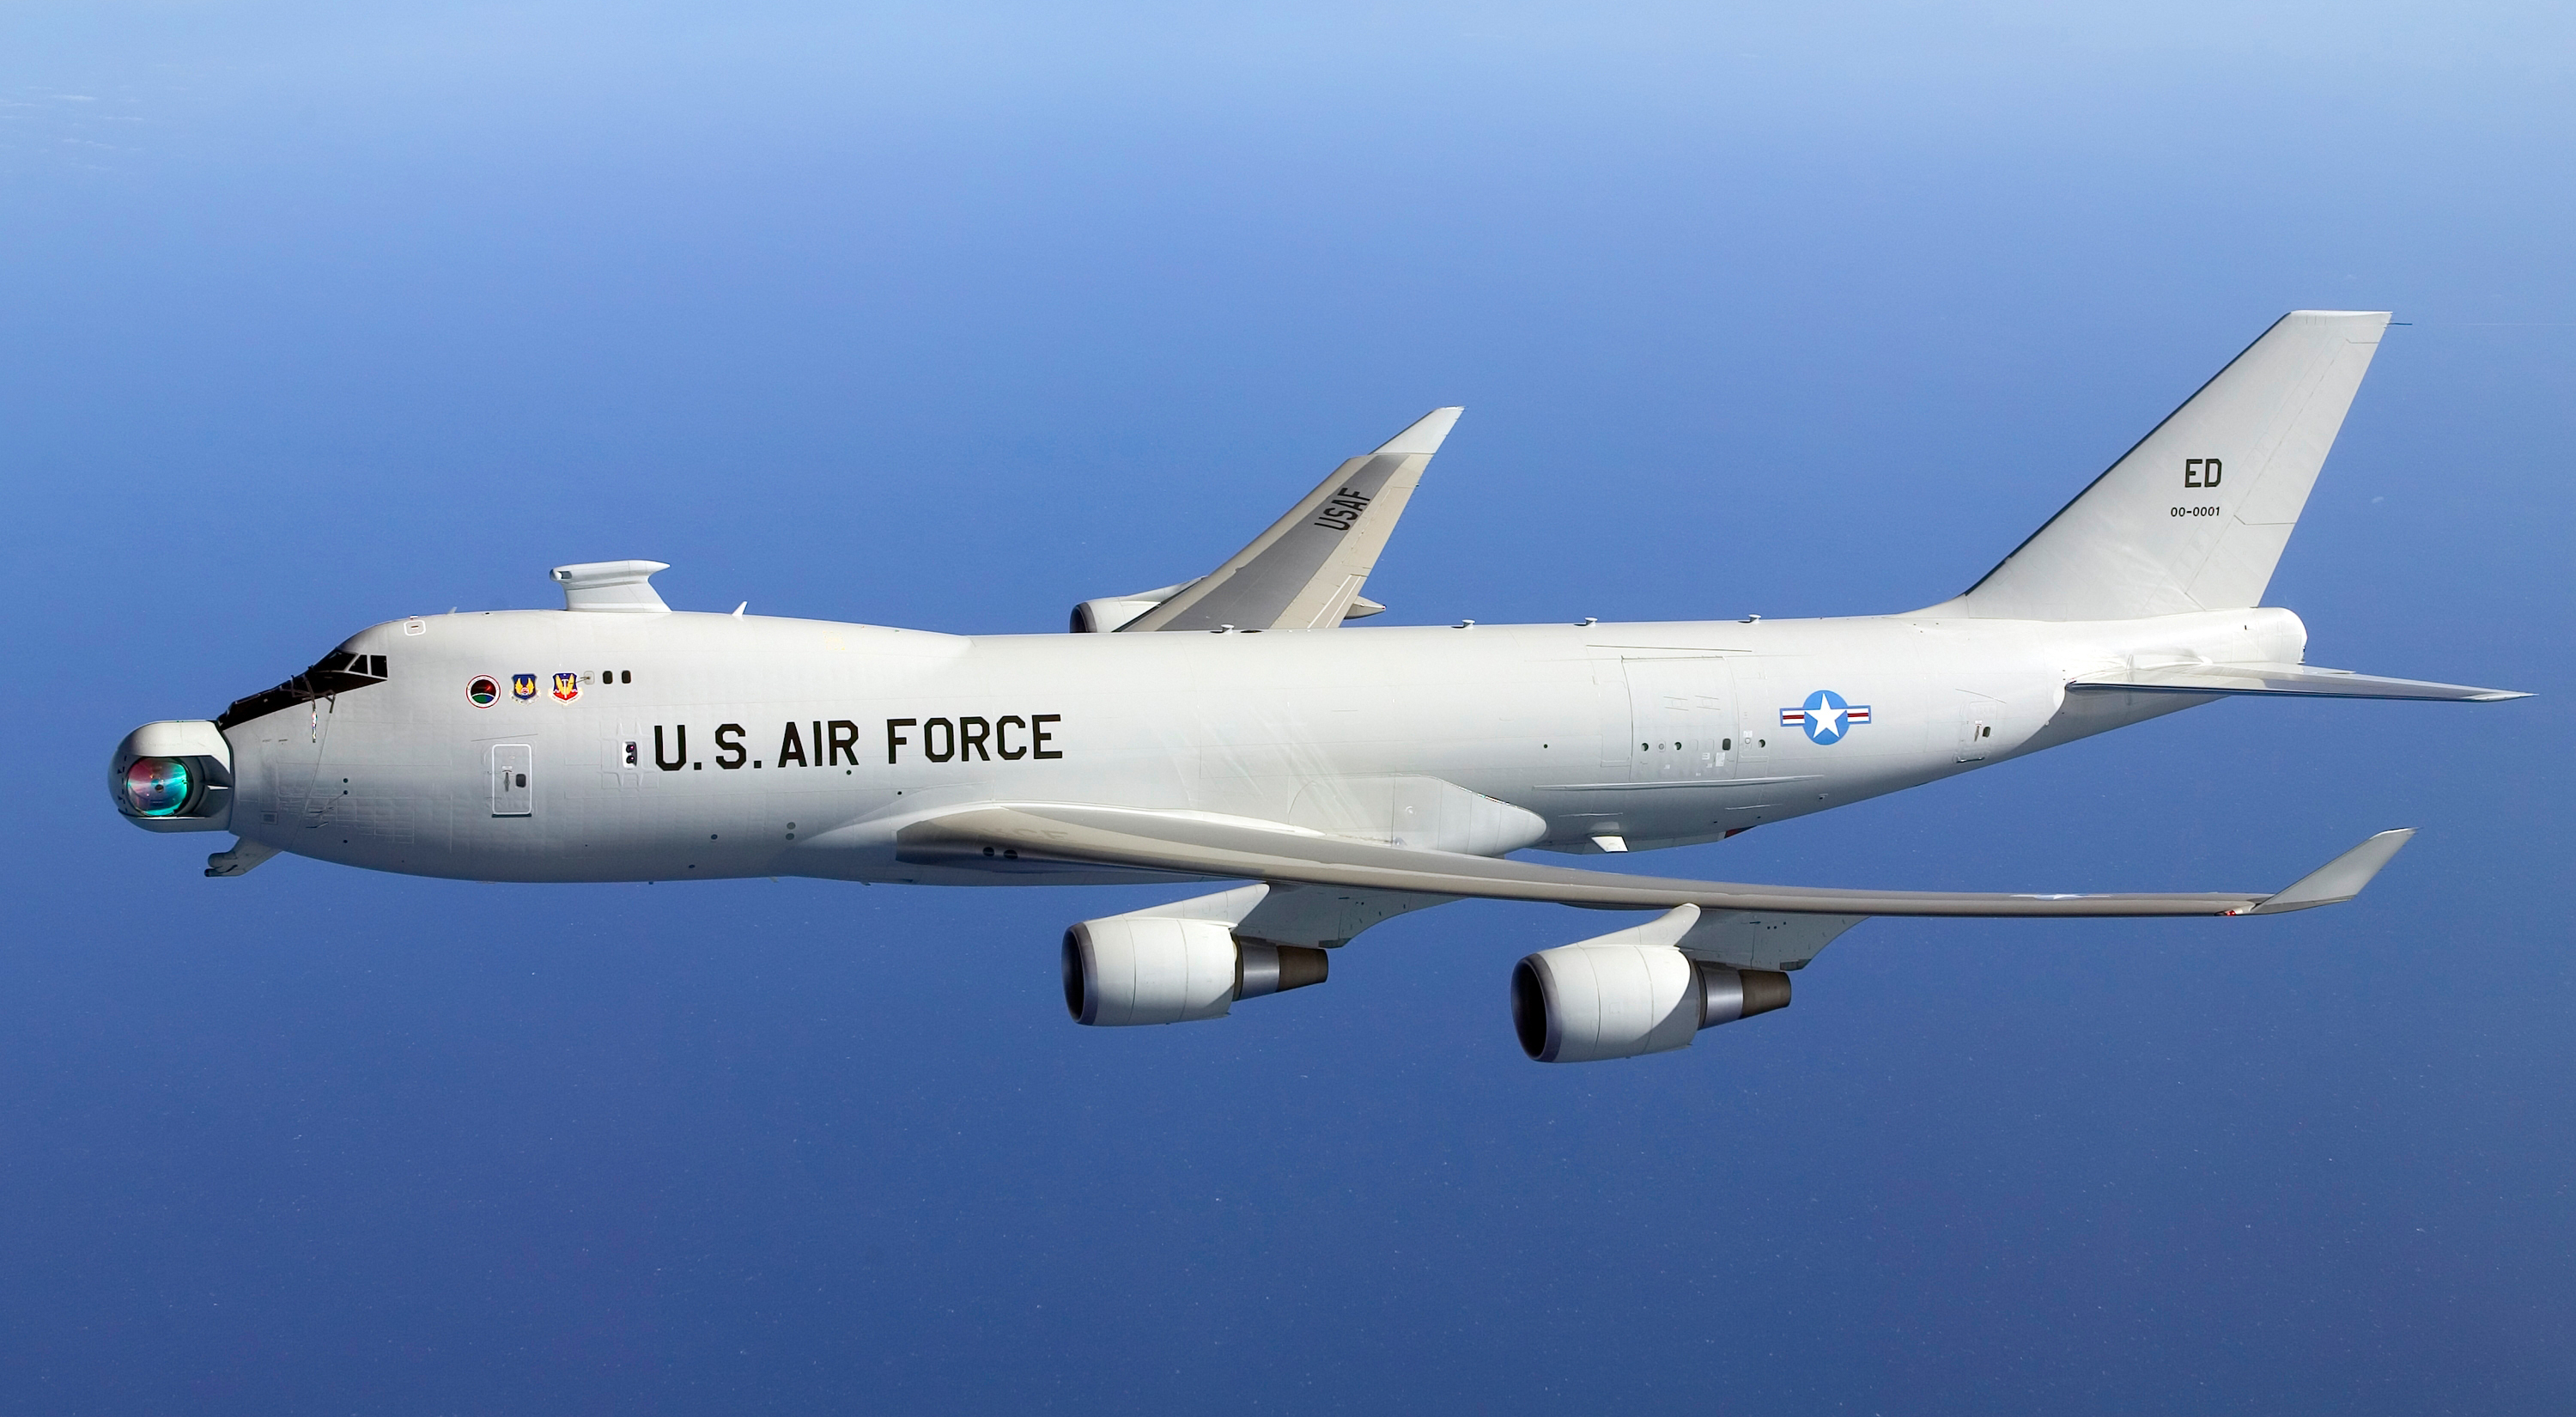 Boeing YAL-1A Airborne Laser follow-on program of the 2000s.